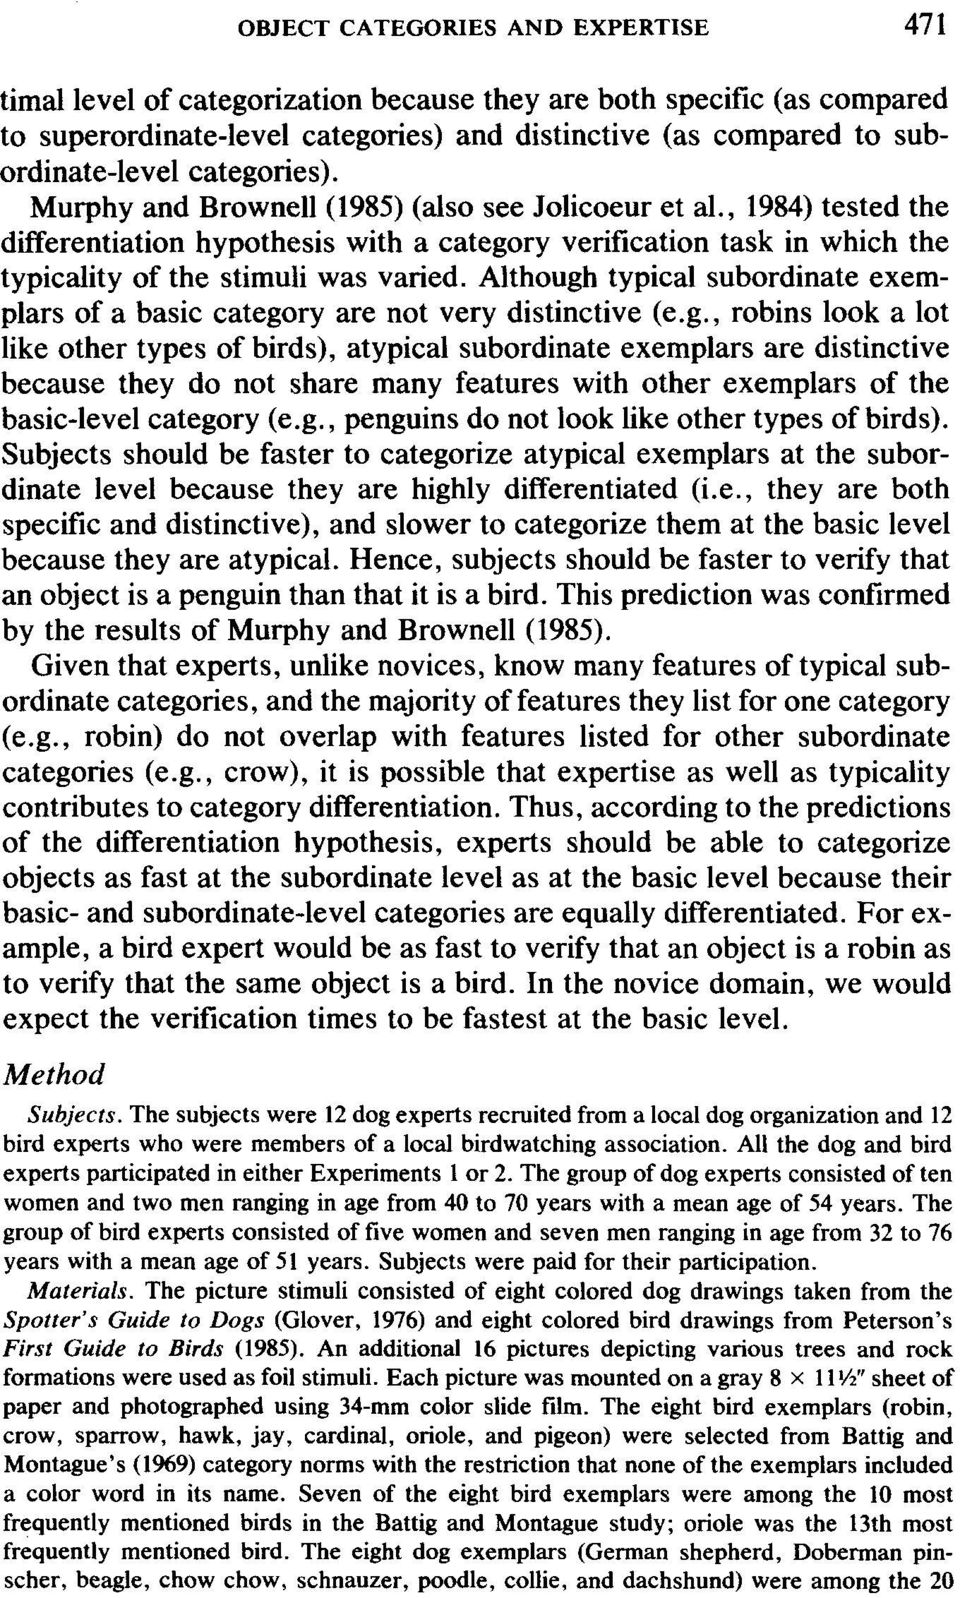 Although typical subordinate exemplars of a basic category are not very distinctive (e.g., robins look a lot like other types of birds), atypical subordinate exemplars are distinctive because they do not share many features with other exemplars of the basic-level category (e.